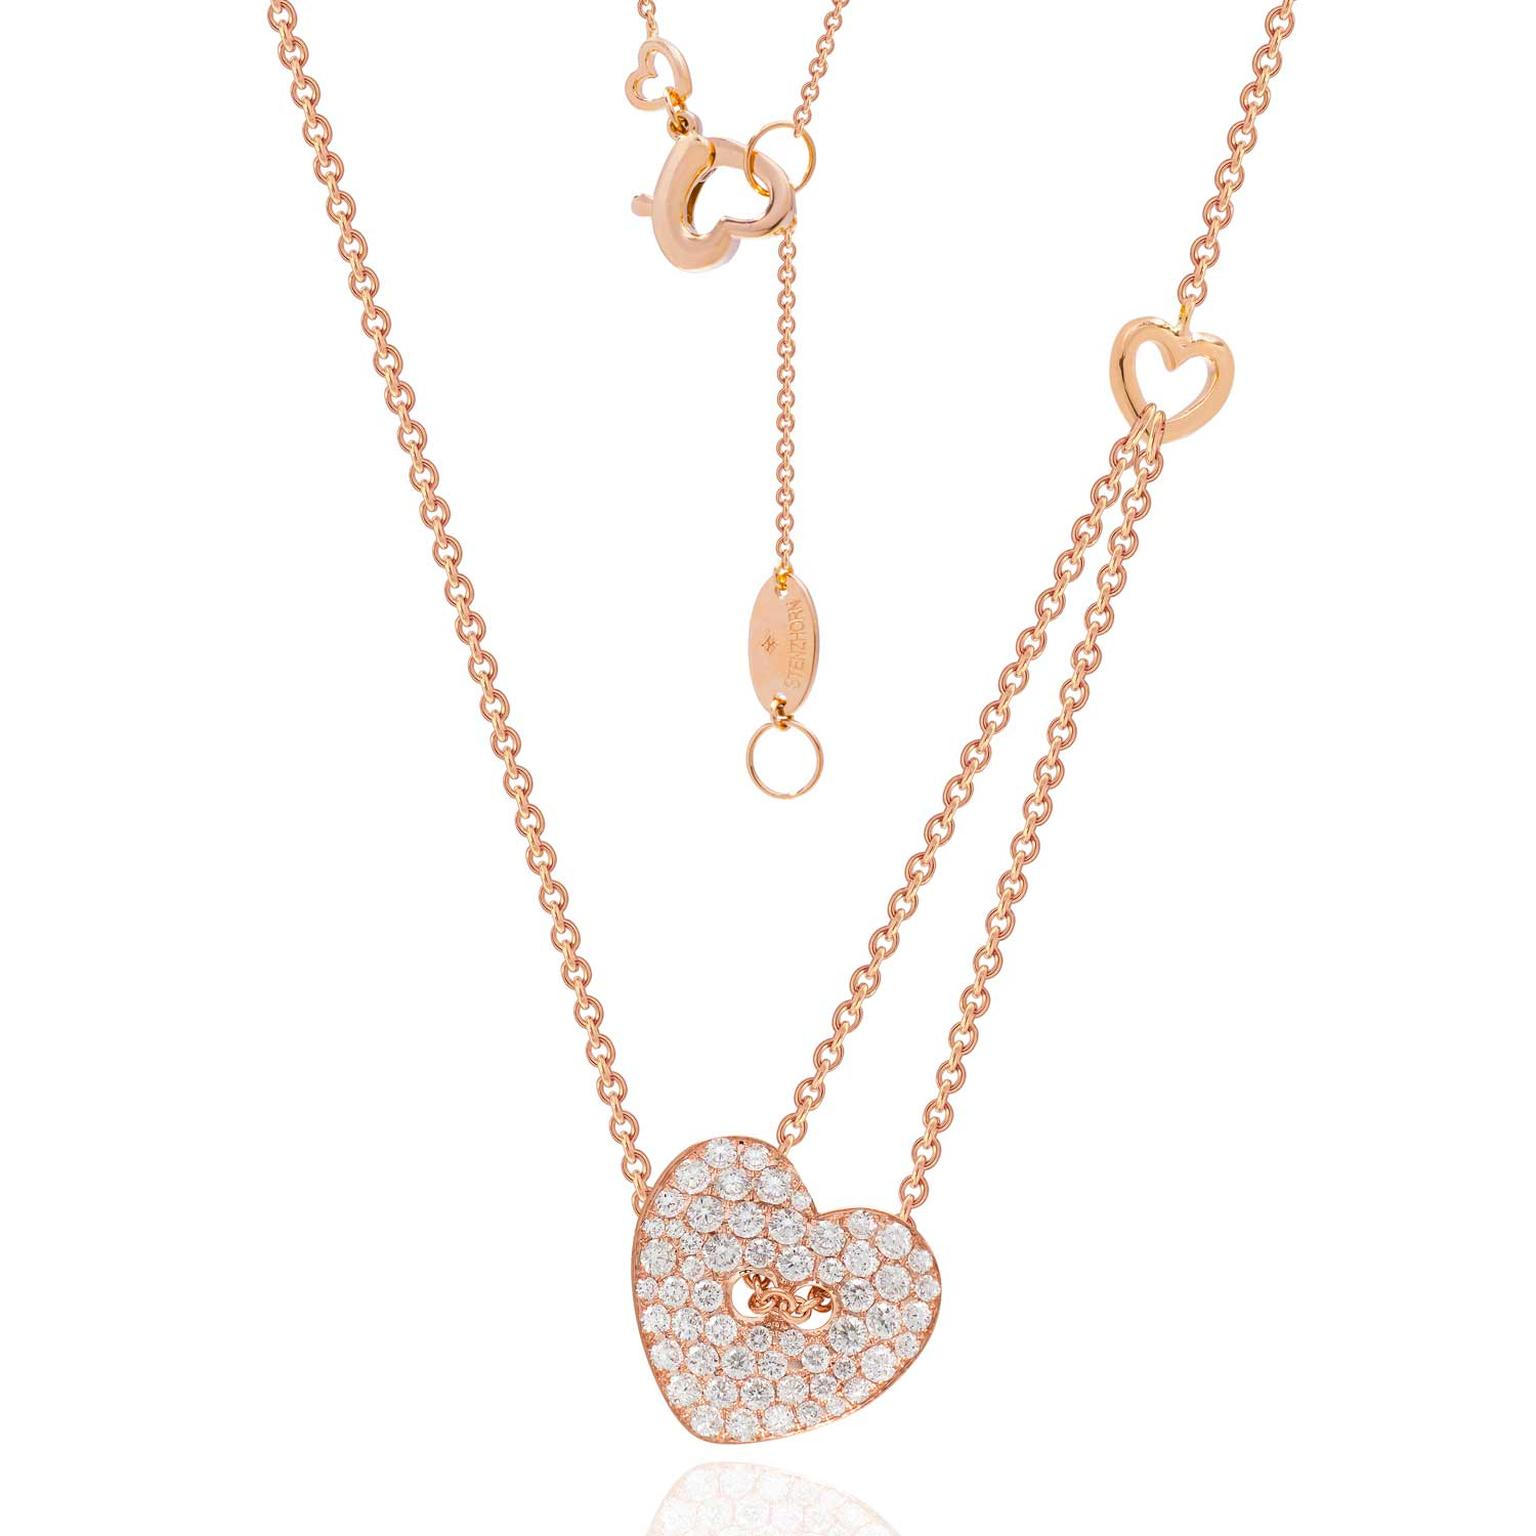 Stenzhorn Chain my Heart necklace